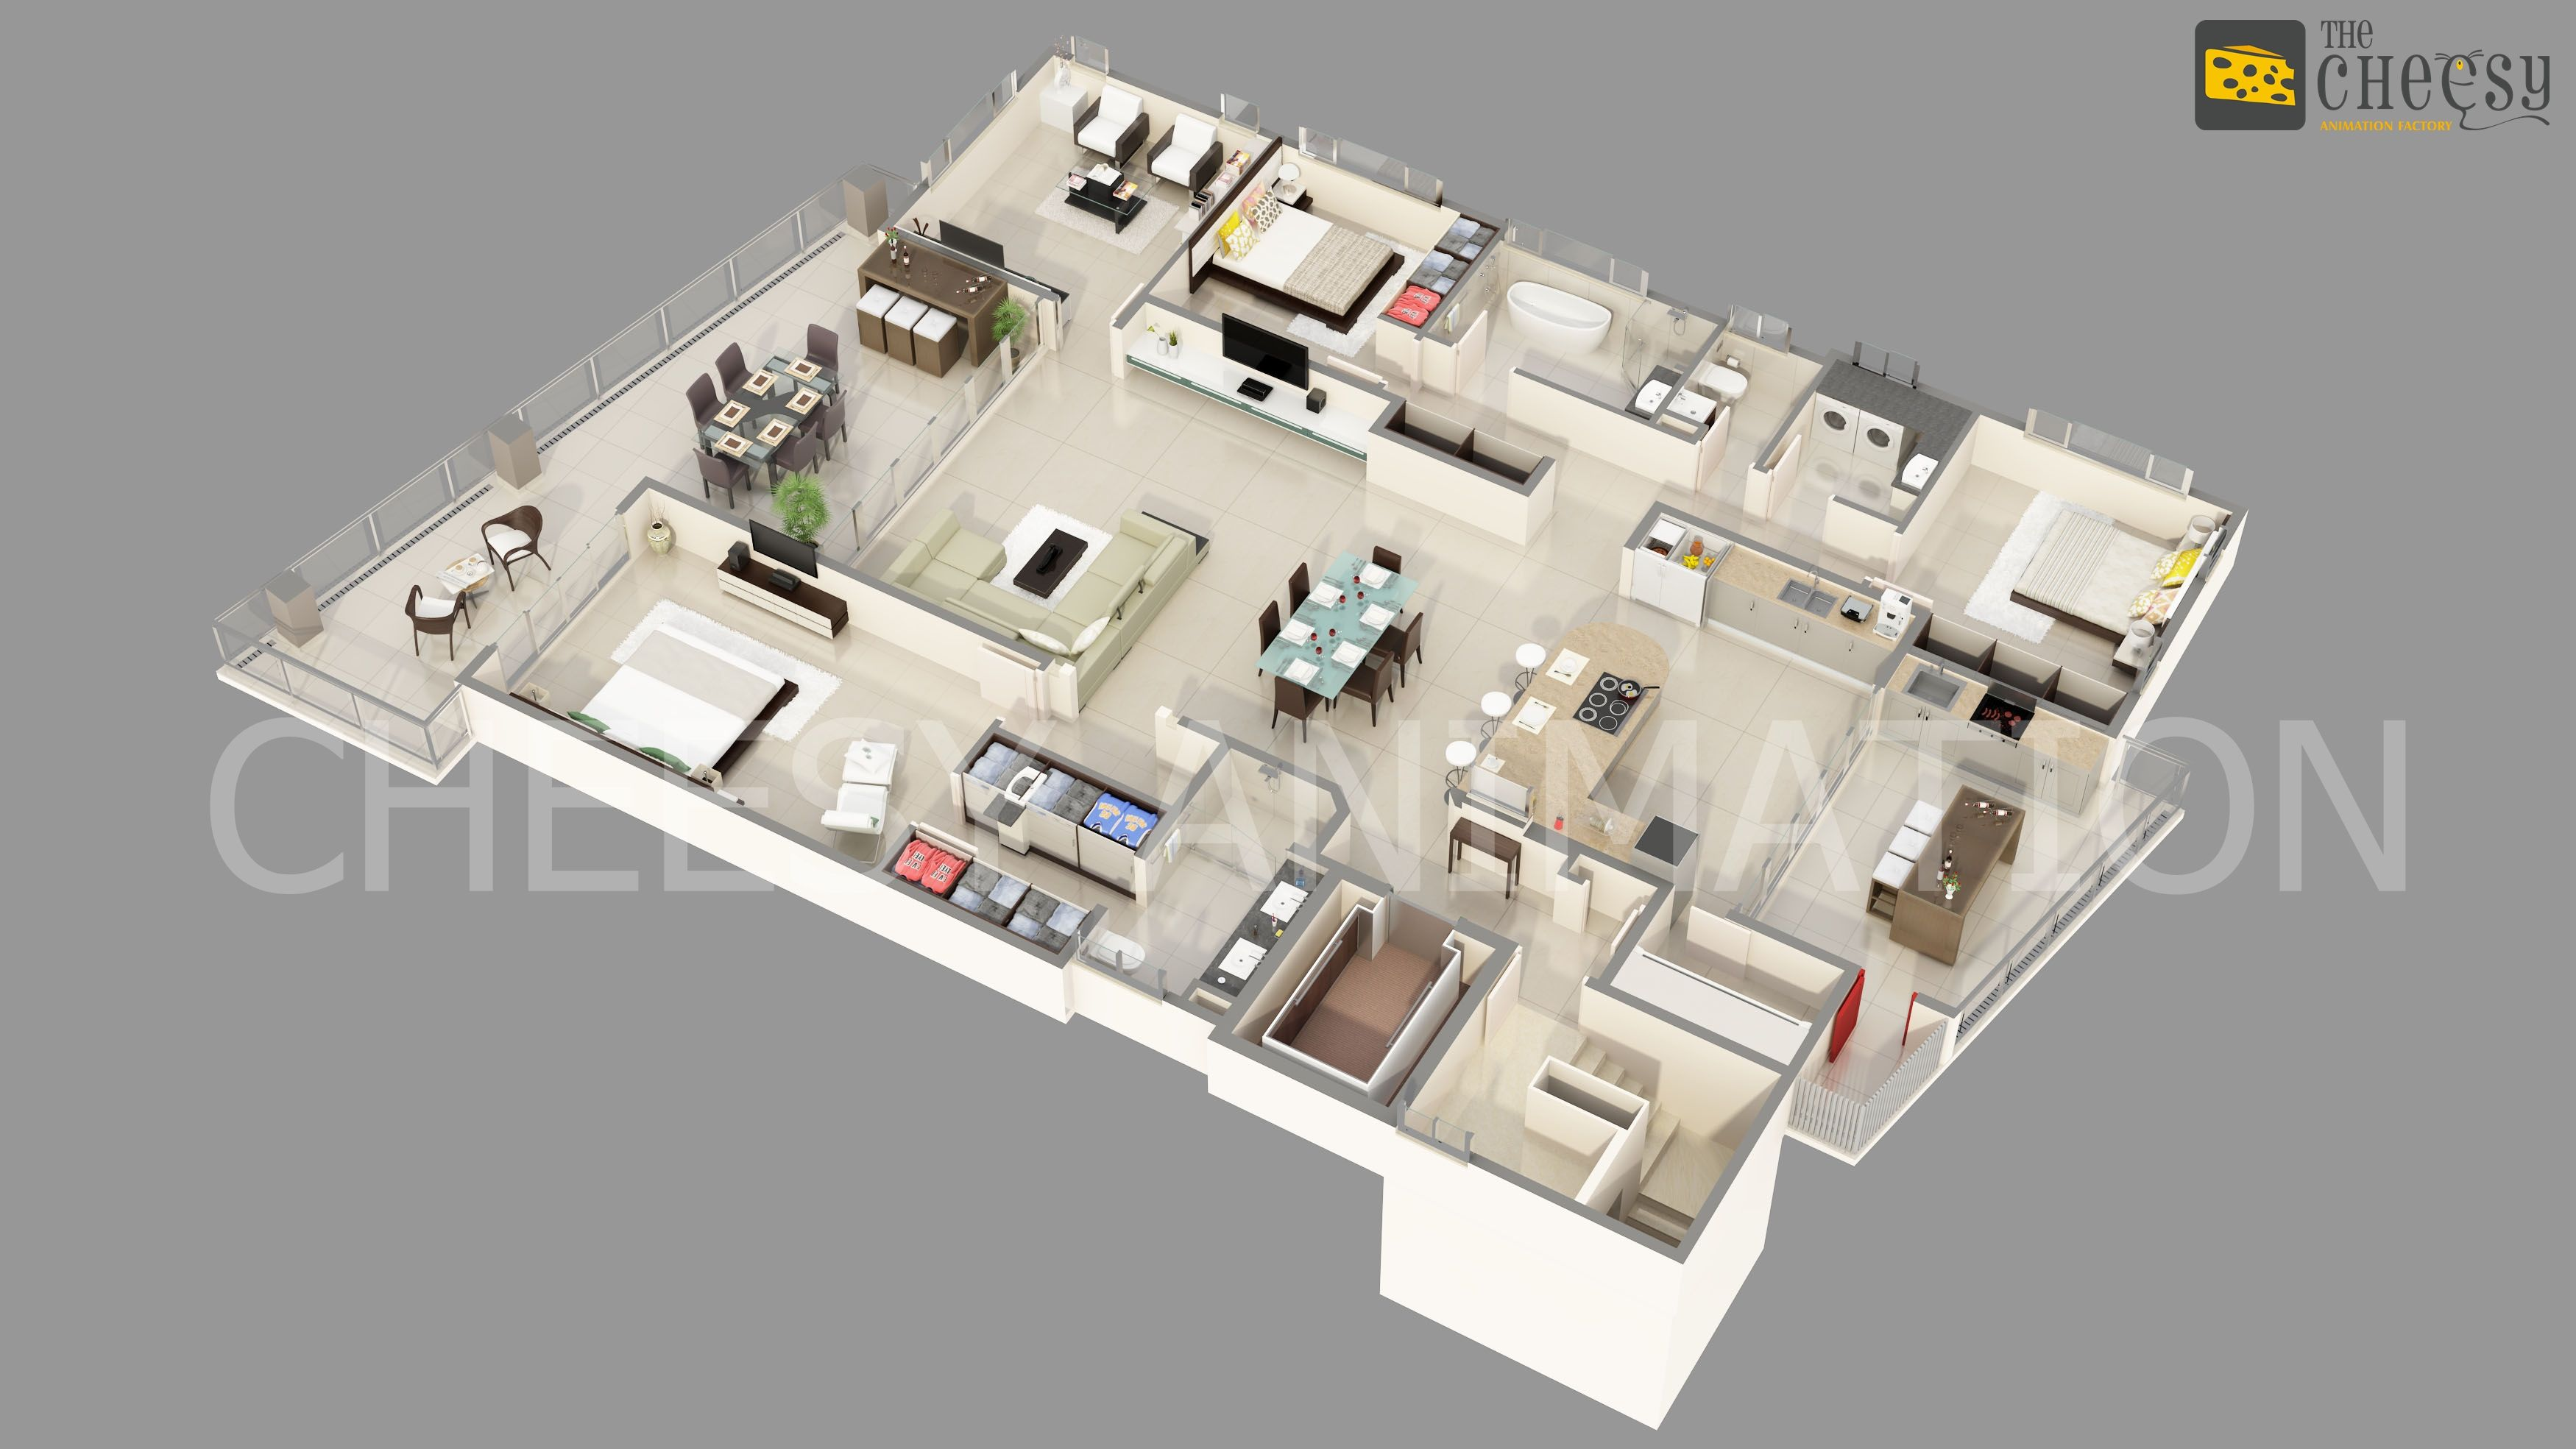 Studio Plans And Designs the cheesy animation studio 2d and 3d floor plan rendering and